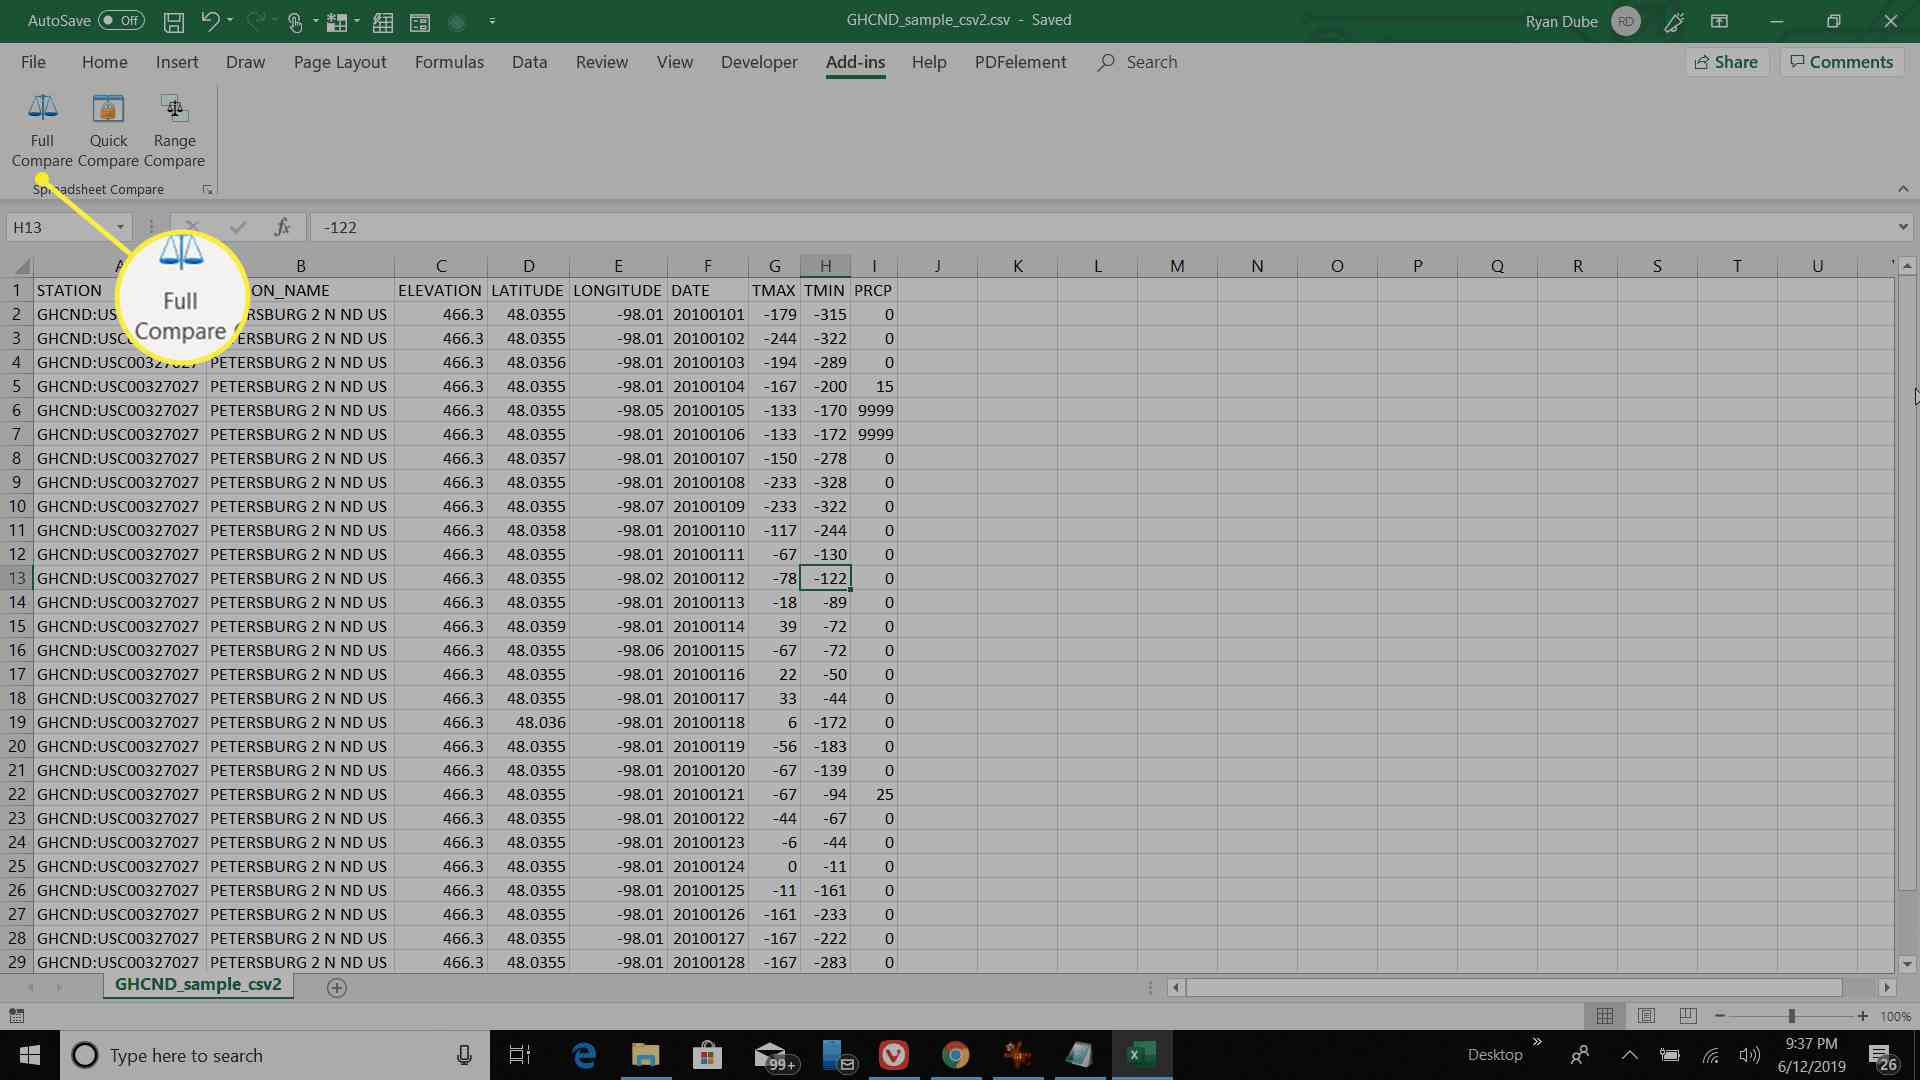 Excel showing Full Compare option